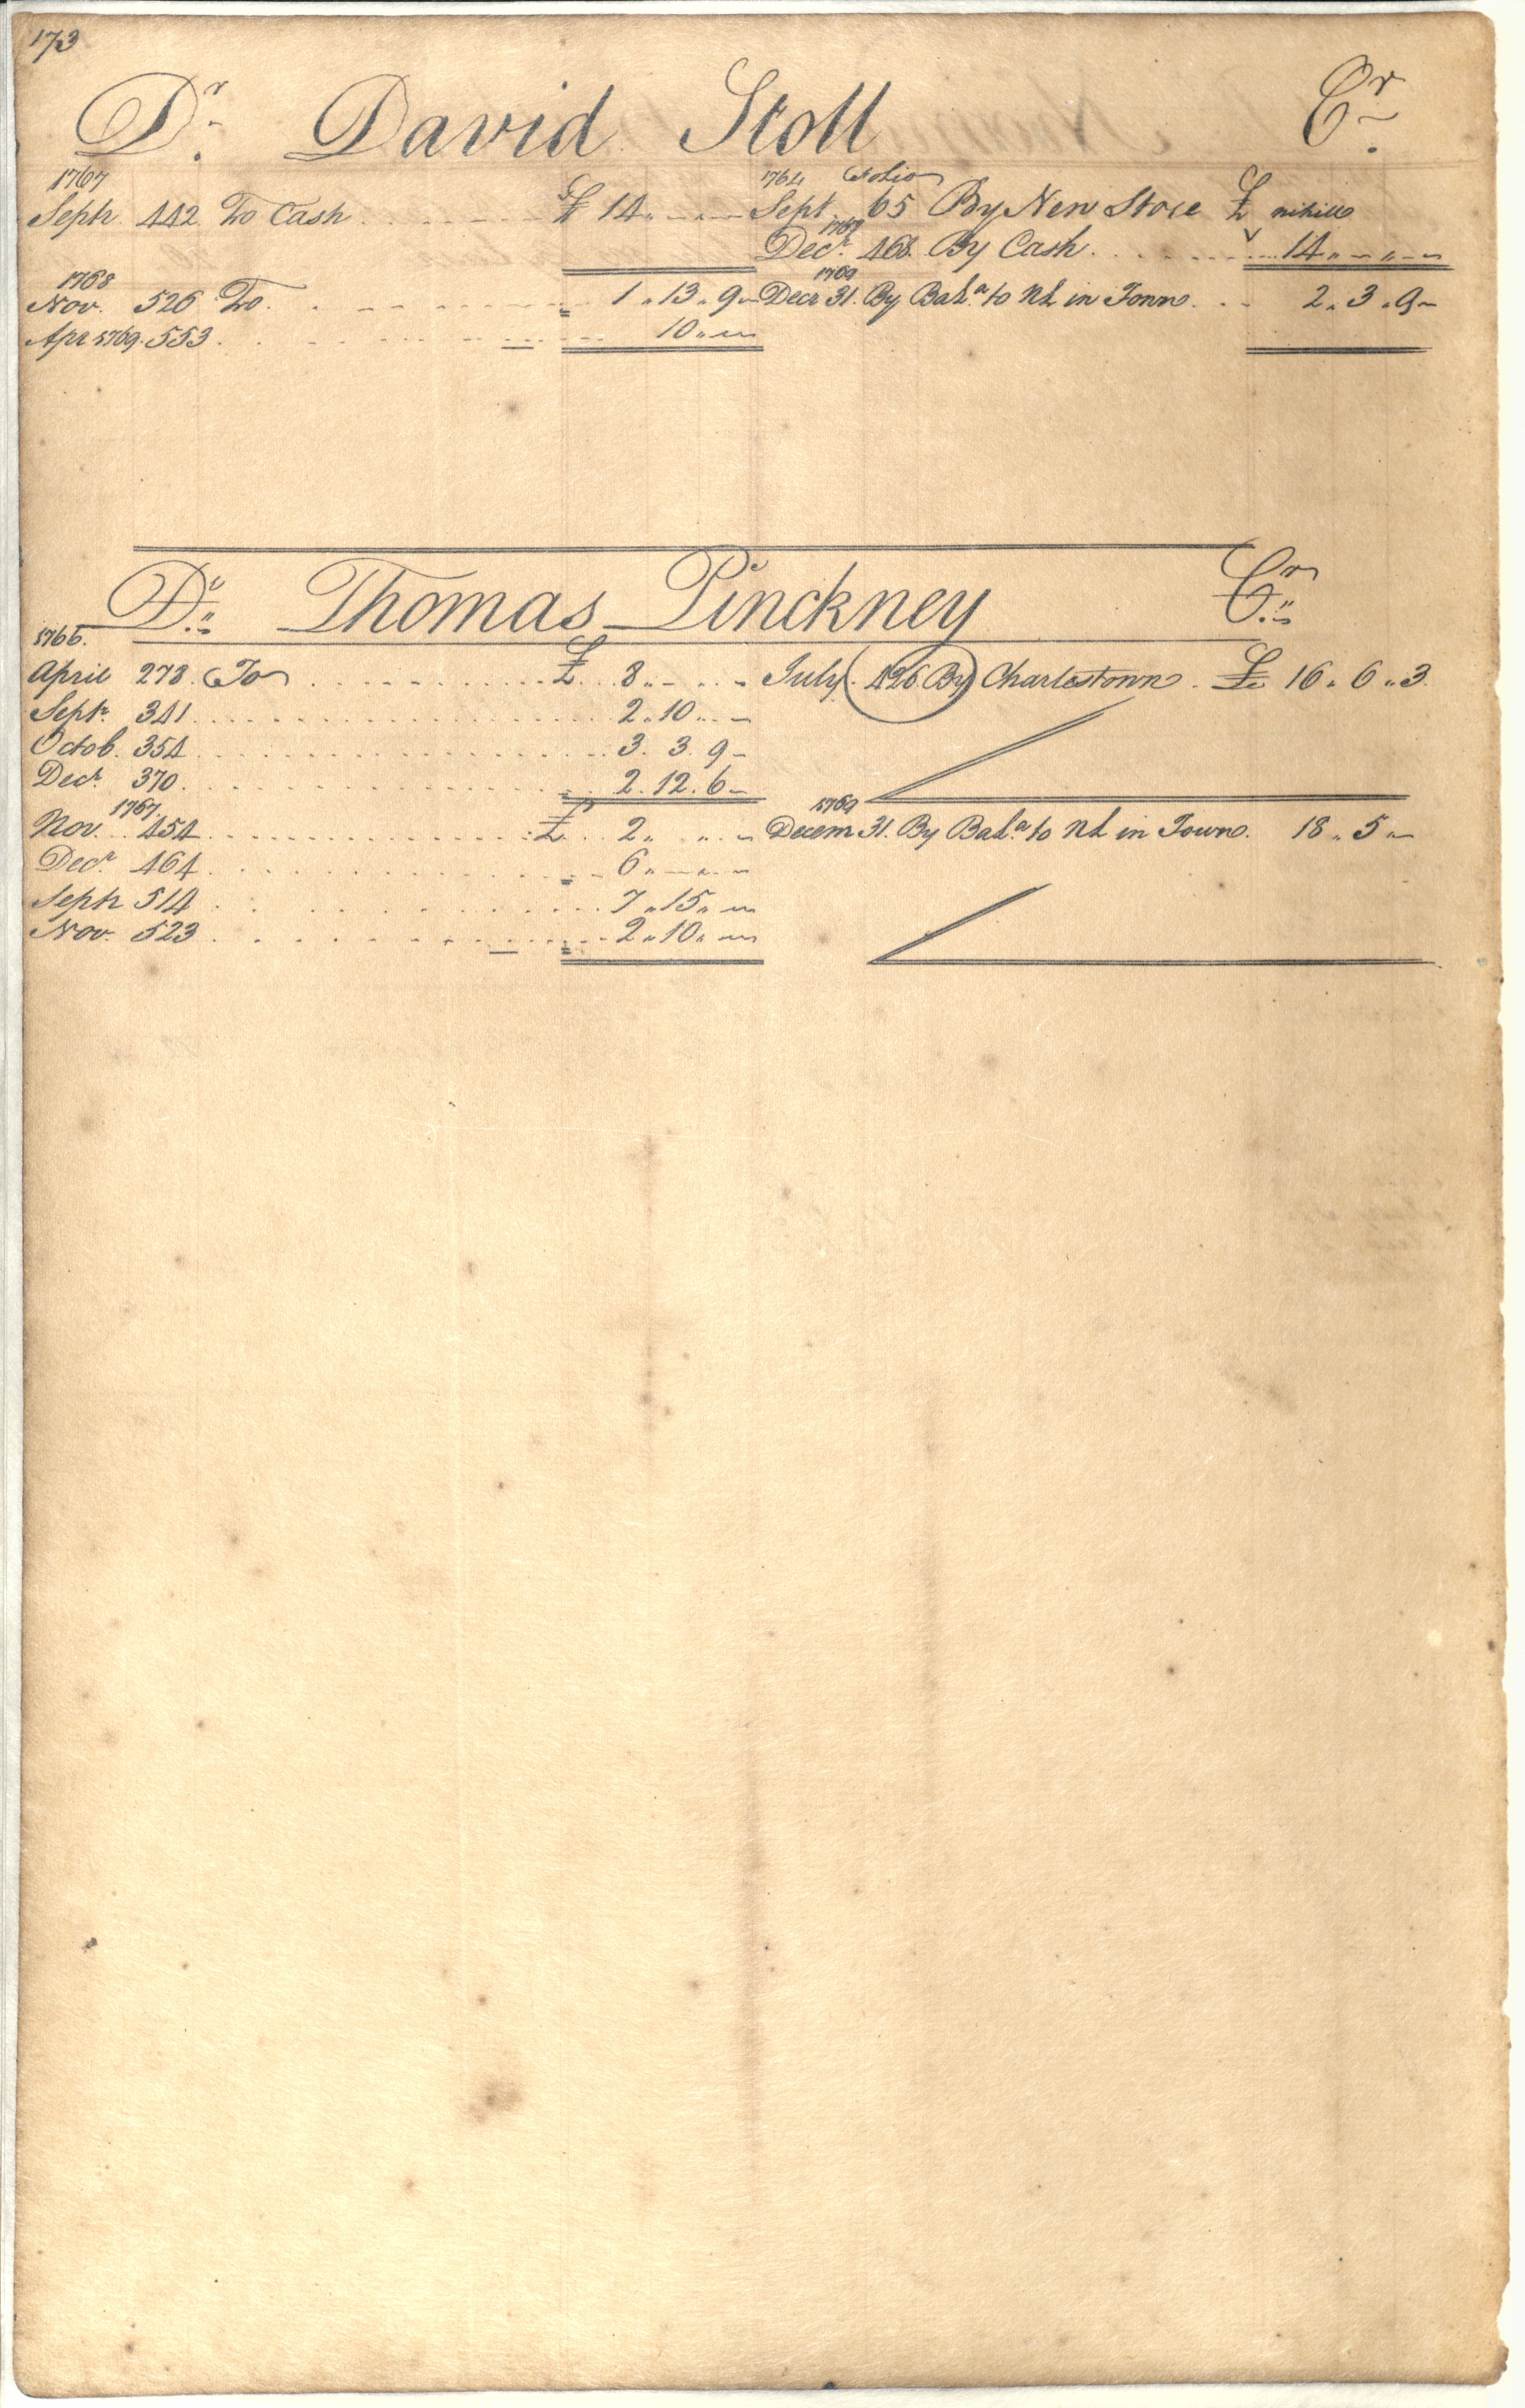 Plowden Weston's Business Ledger, page 173